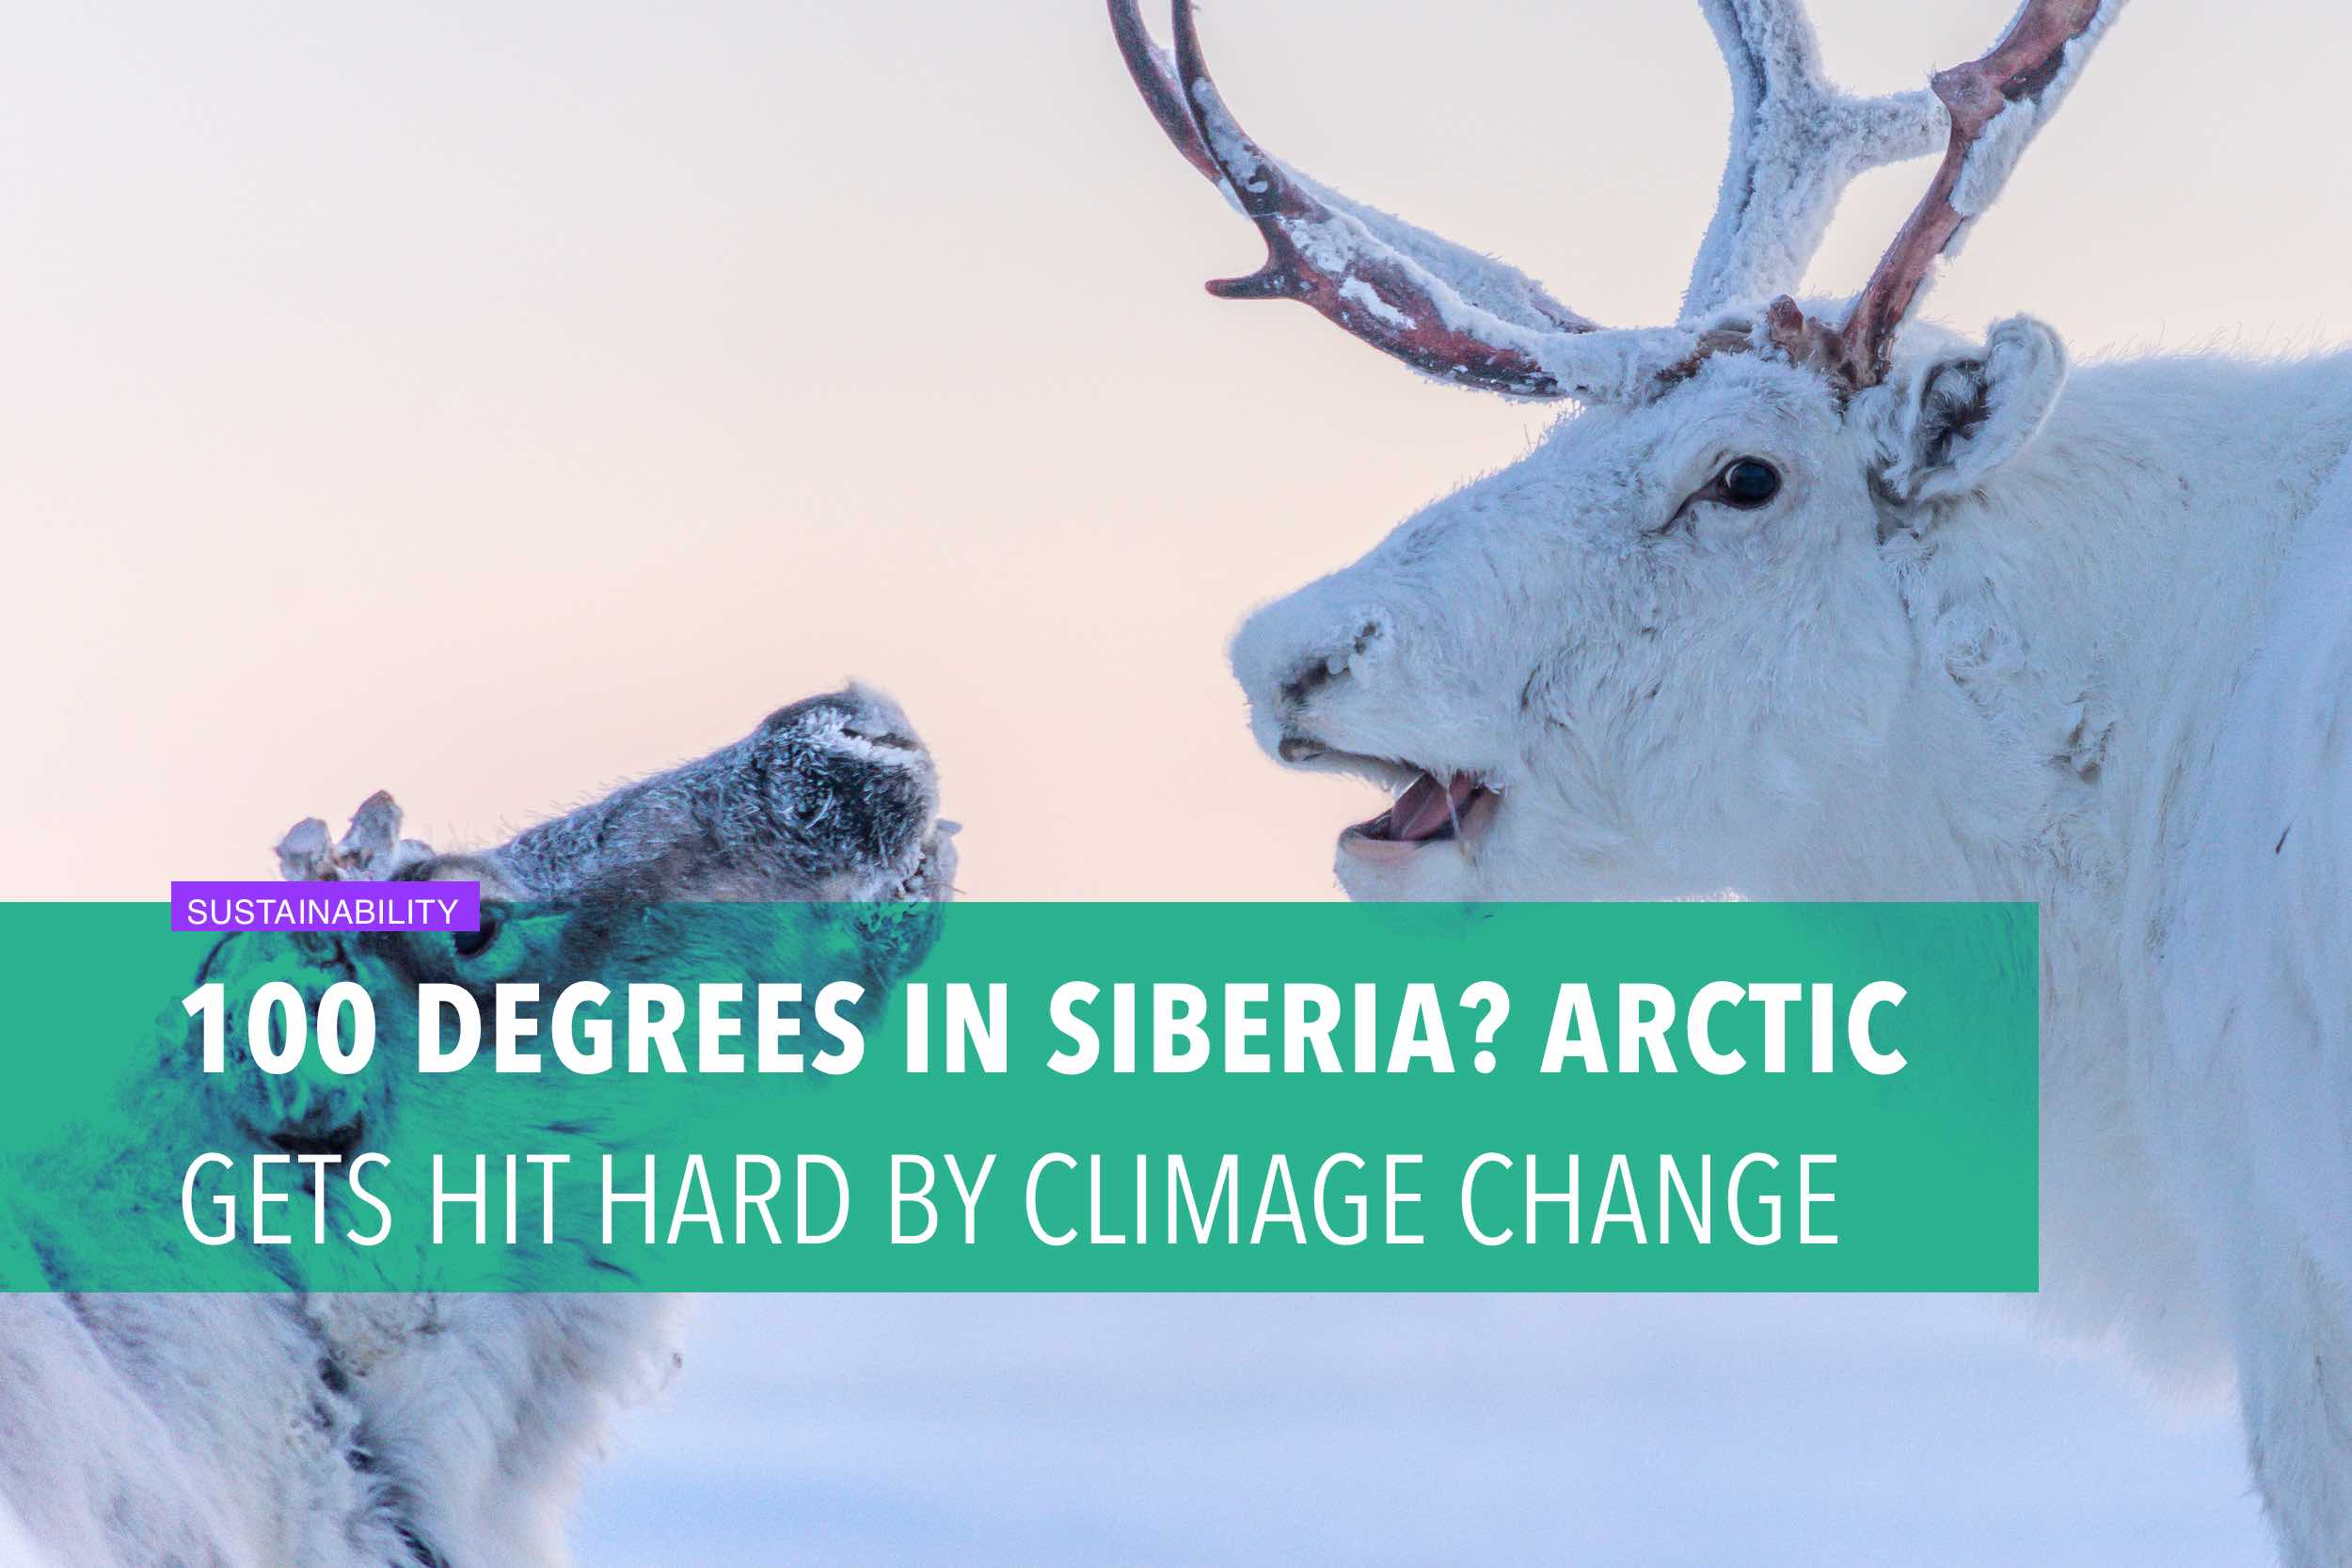 100 degrees in Siberia? Arctic gets hit hard by climate change